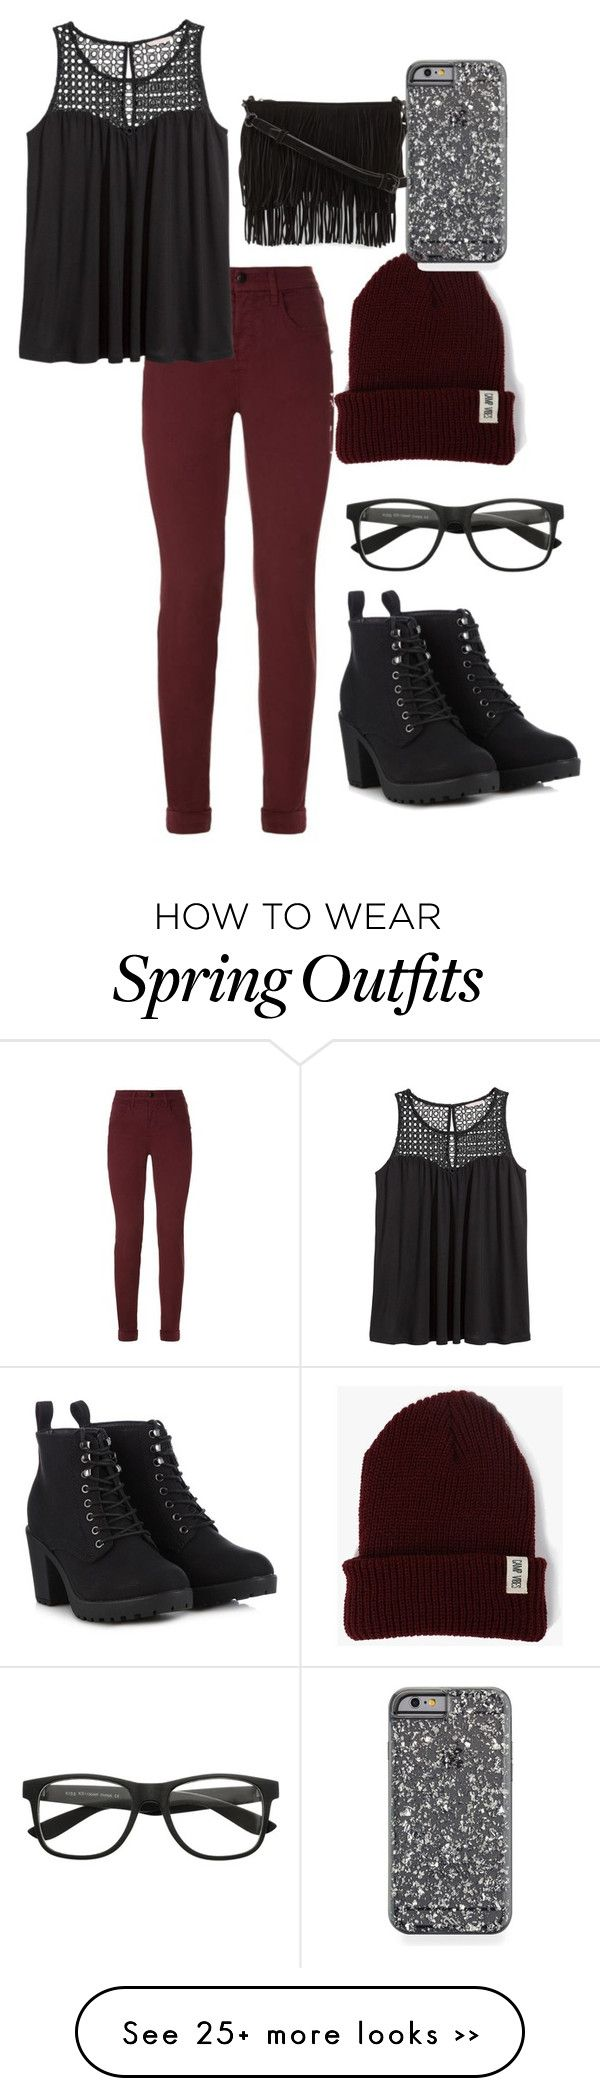 """Outfit_1"" by allierogers275 on Polyvore"